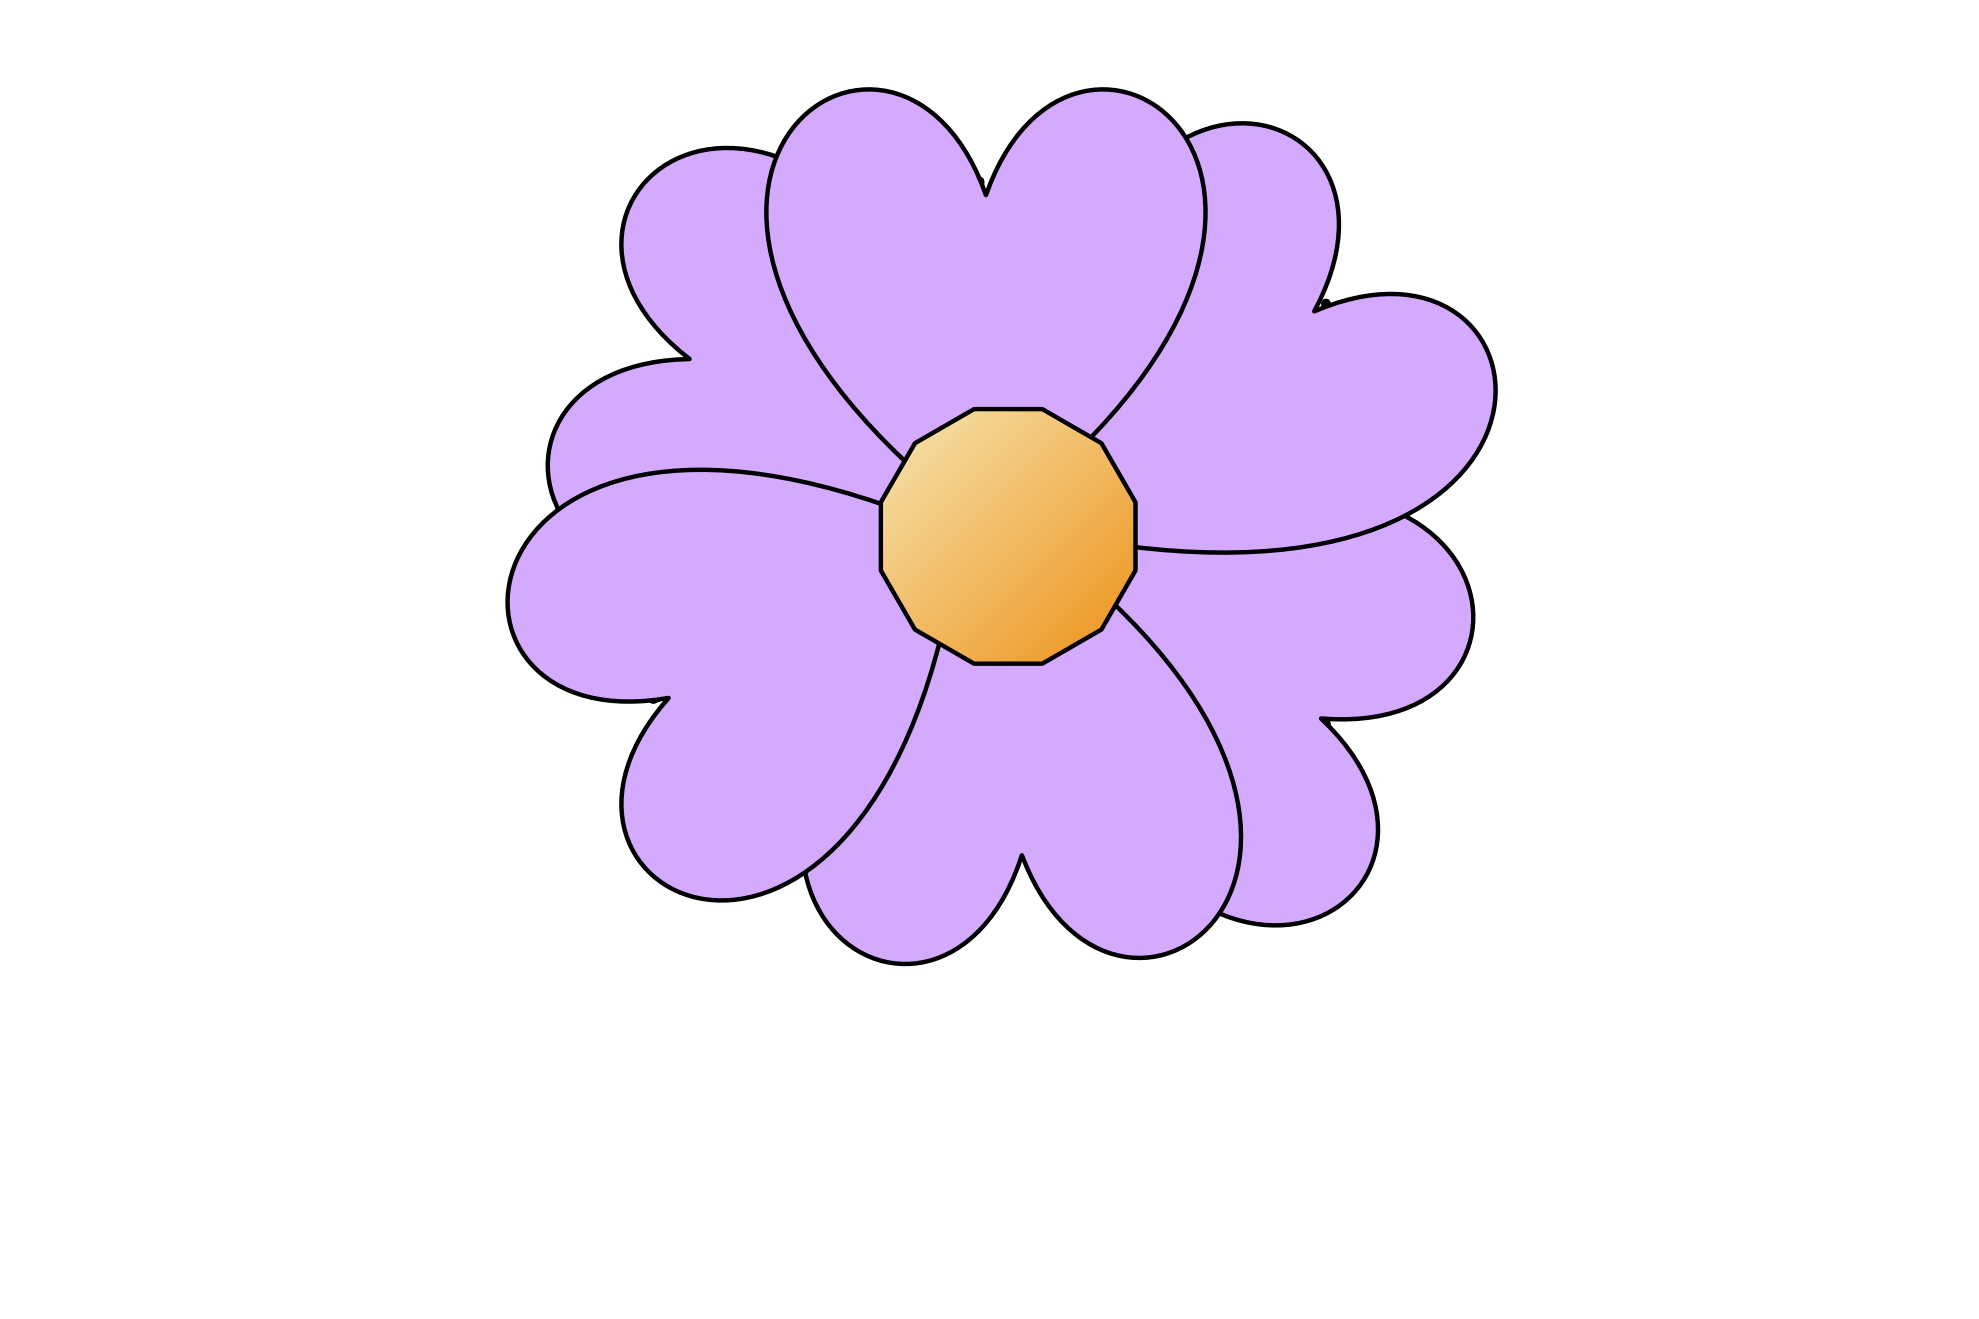 Simple Flower Clip Art Drawing Free Image